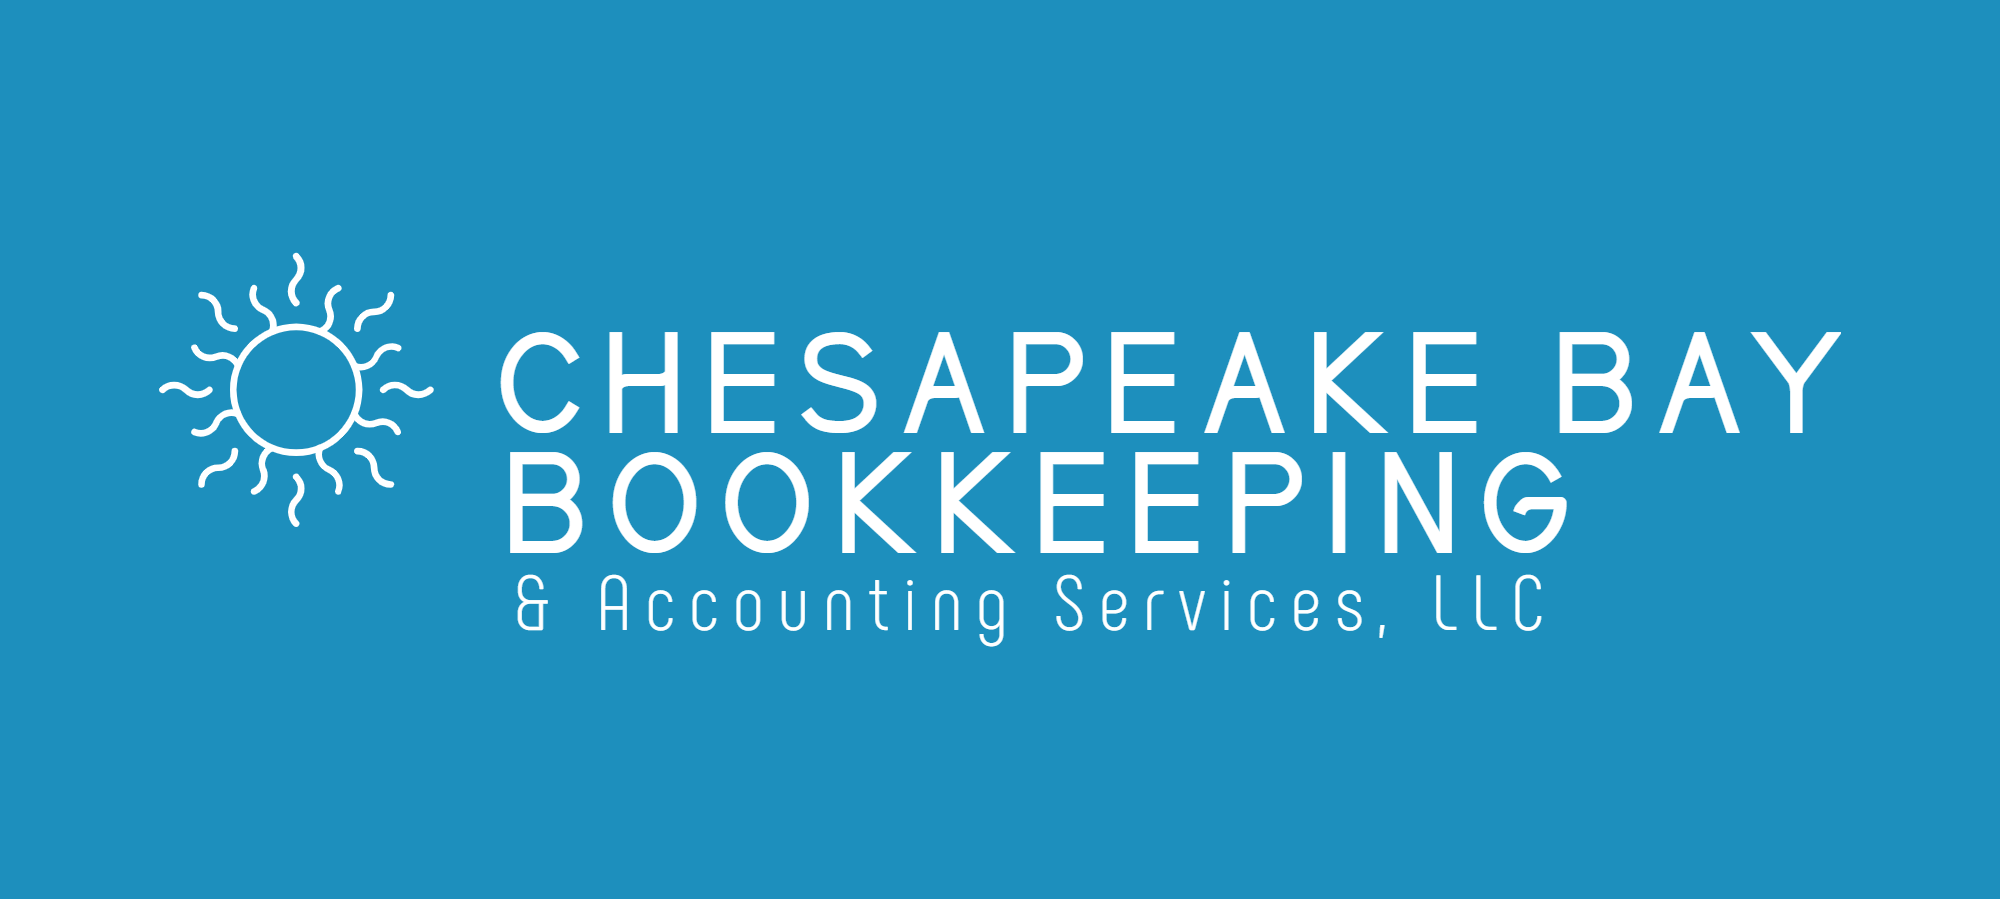 Chesapeake Bay Bookkeeping & Accounting Services, LLC